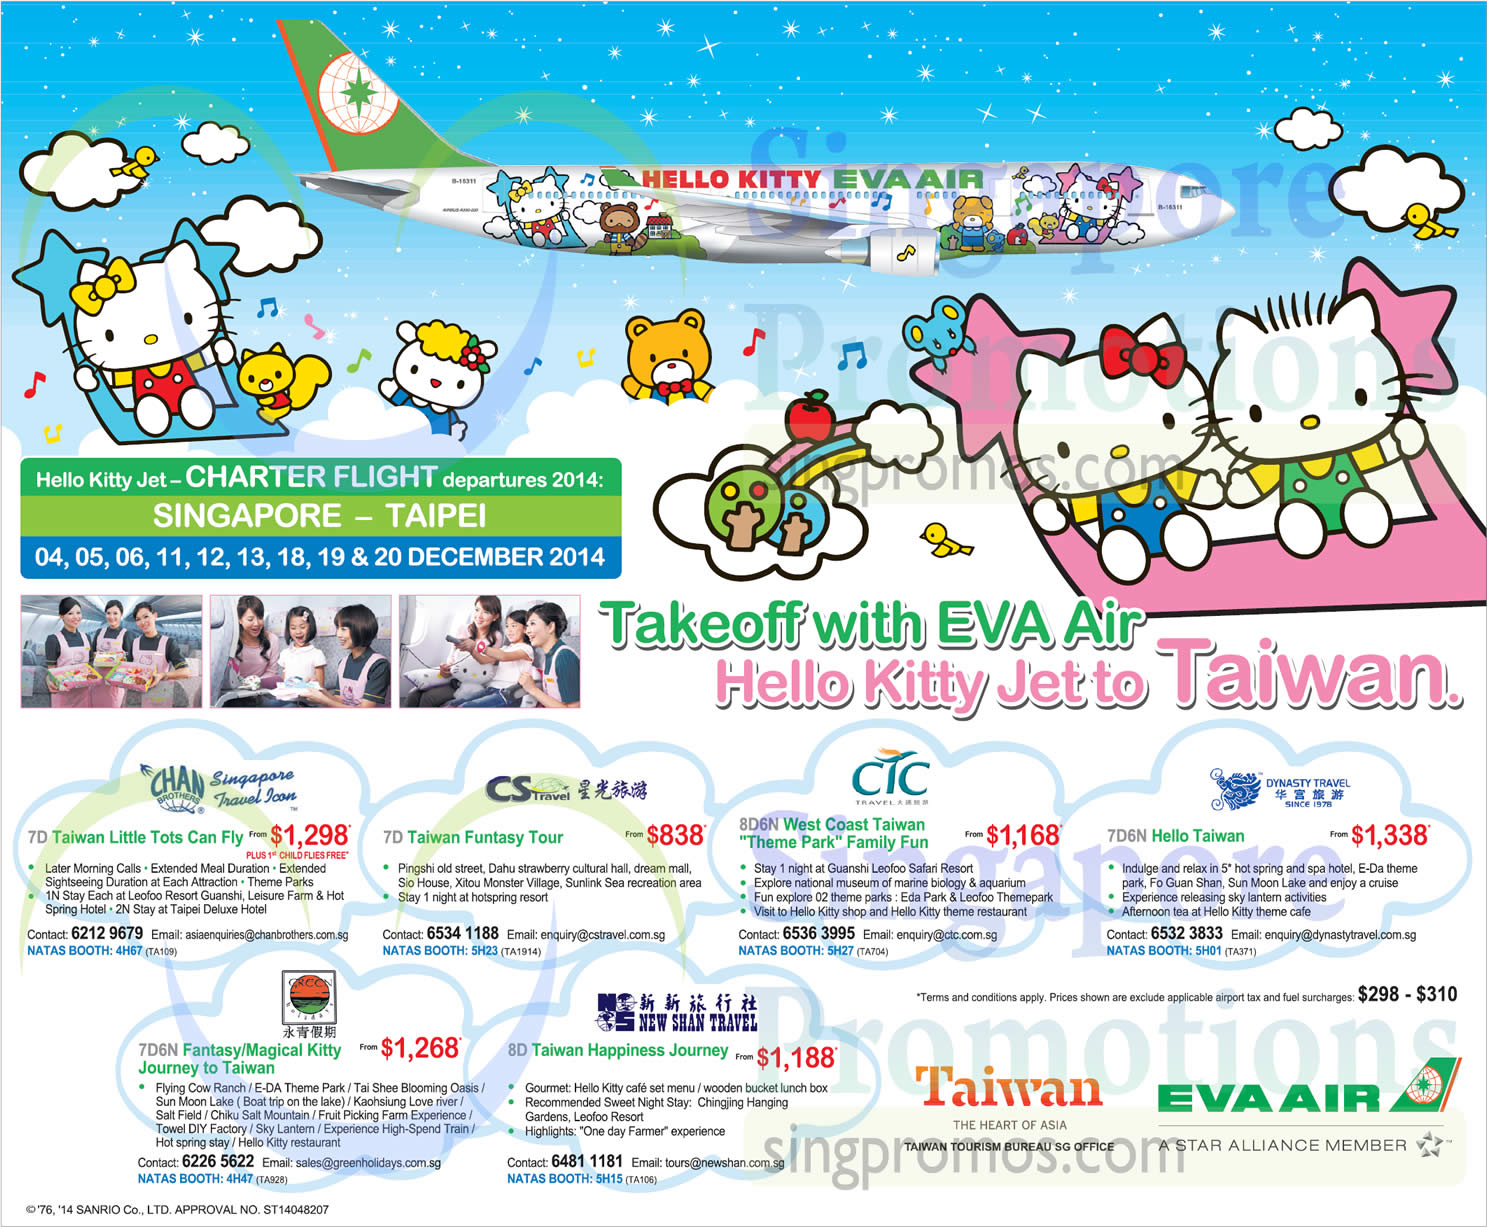 28 Aug Eva Air Hello Kitty Jet to Taiwan Offer Participating Travels